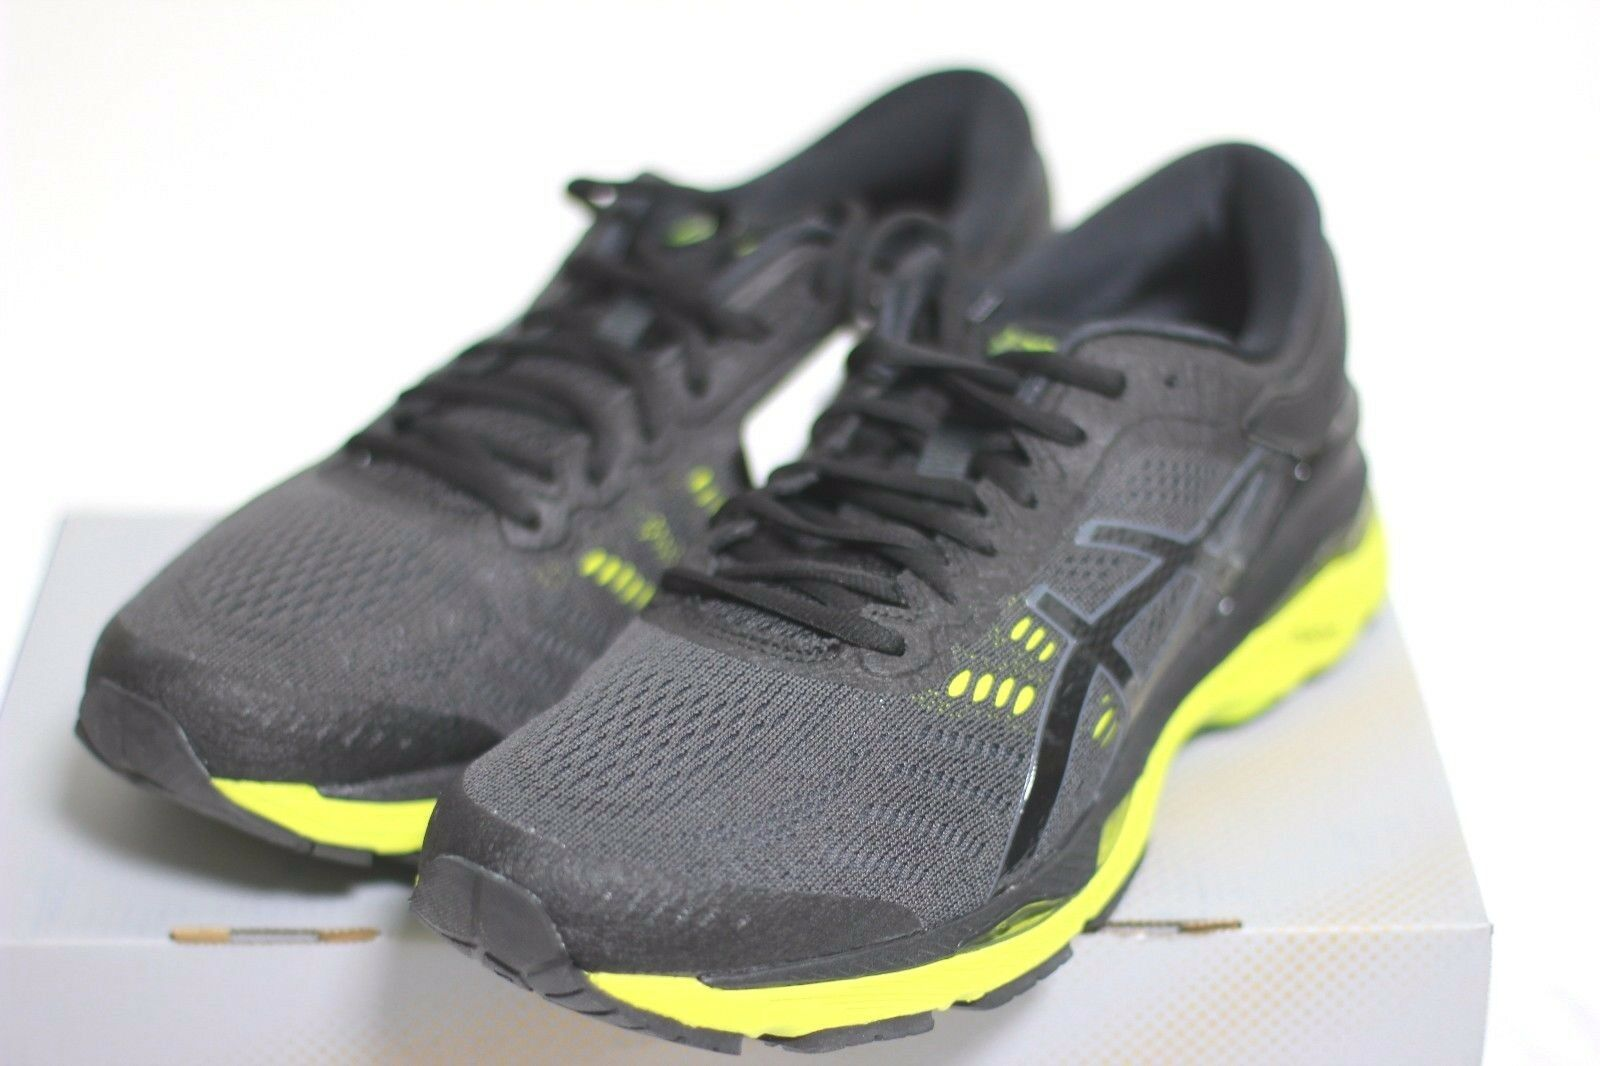 ASICS New Men's GEL KAYANO 24 (2E) Wide Type Running shoes Black Green Authentic